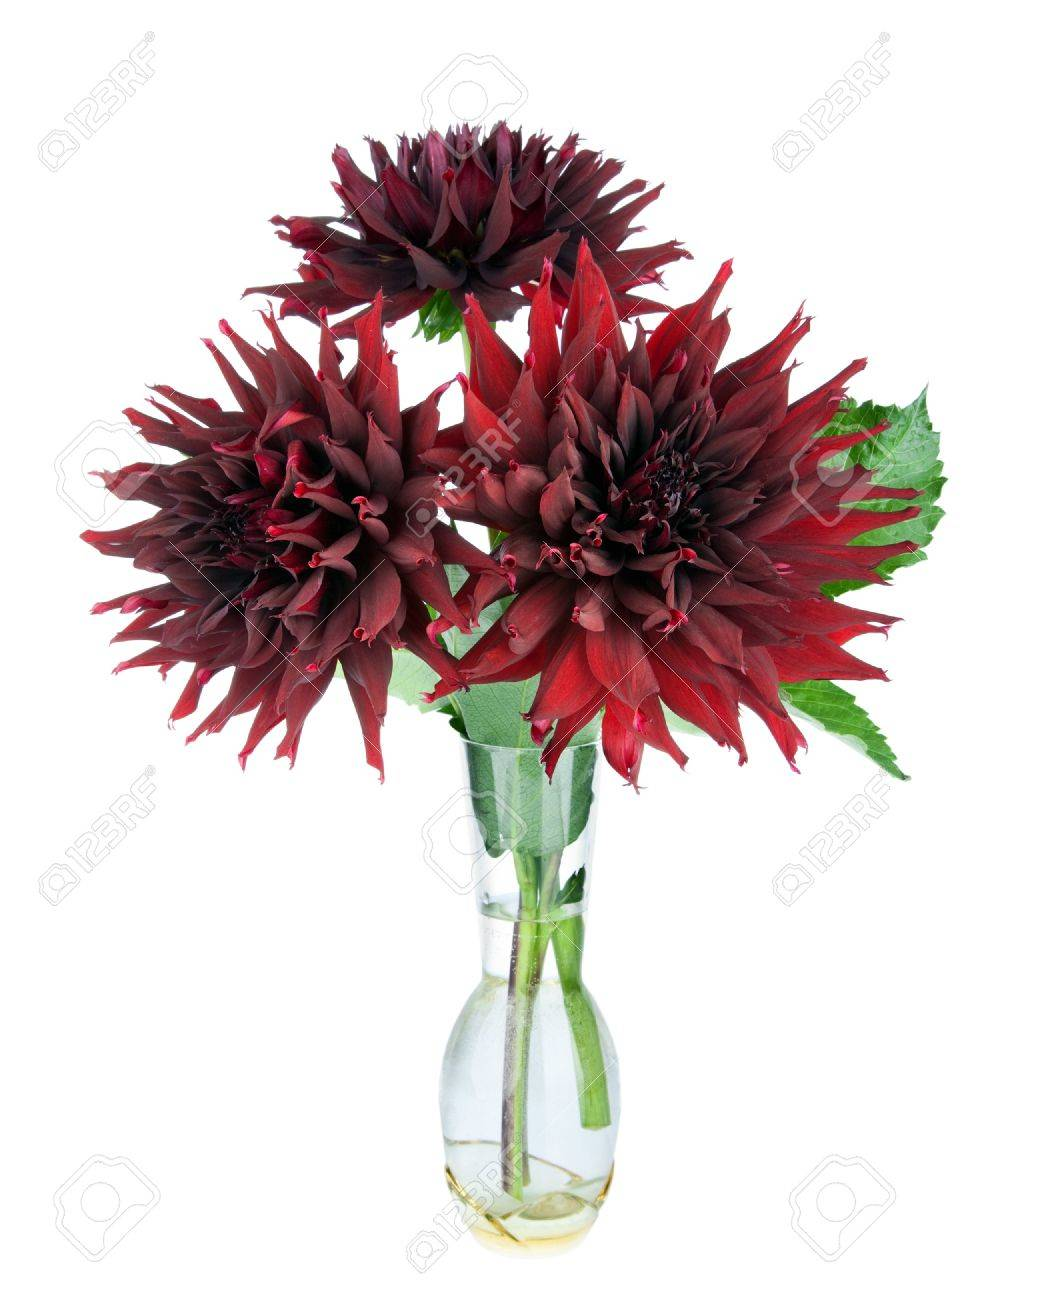 Beautiful Red Dahlias Flowers In Vase Isolated On White Stock Photo